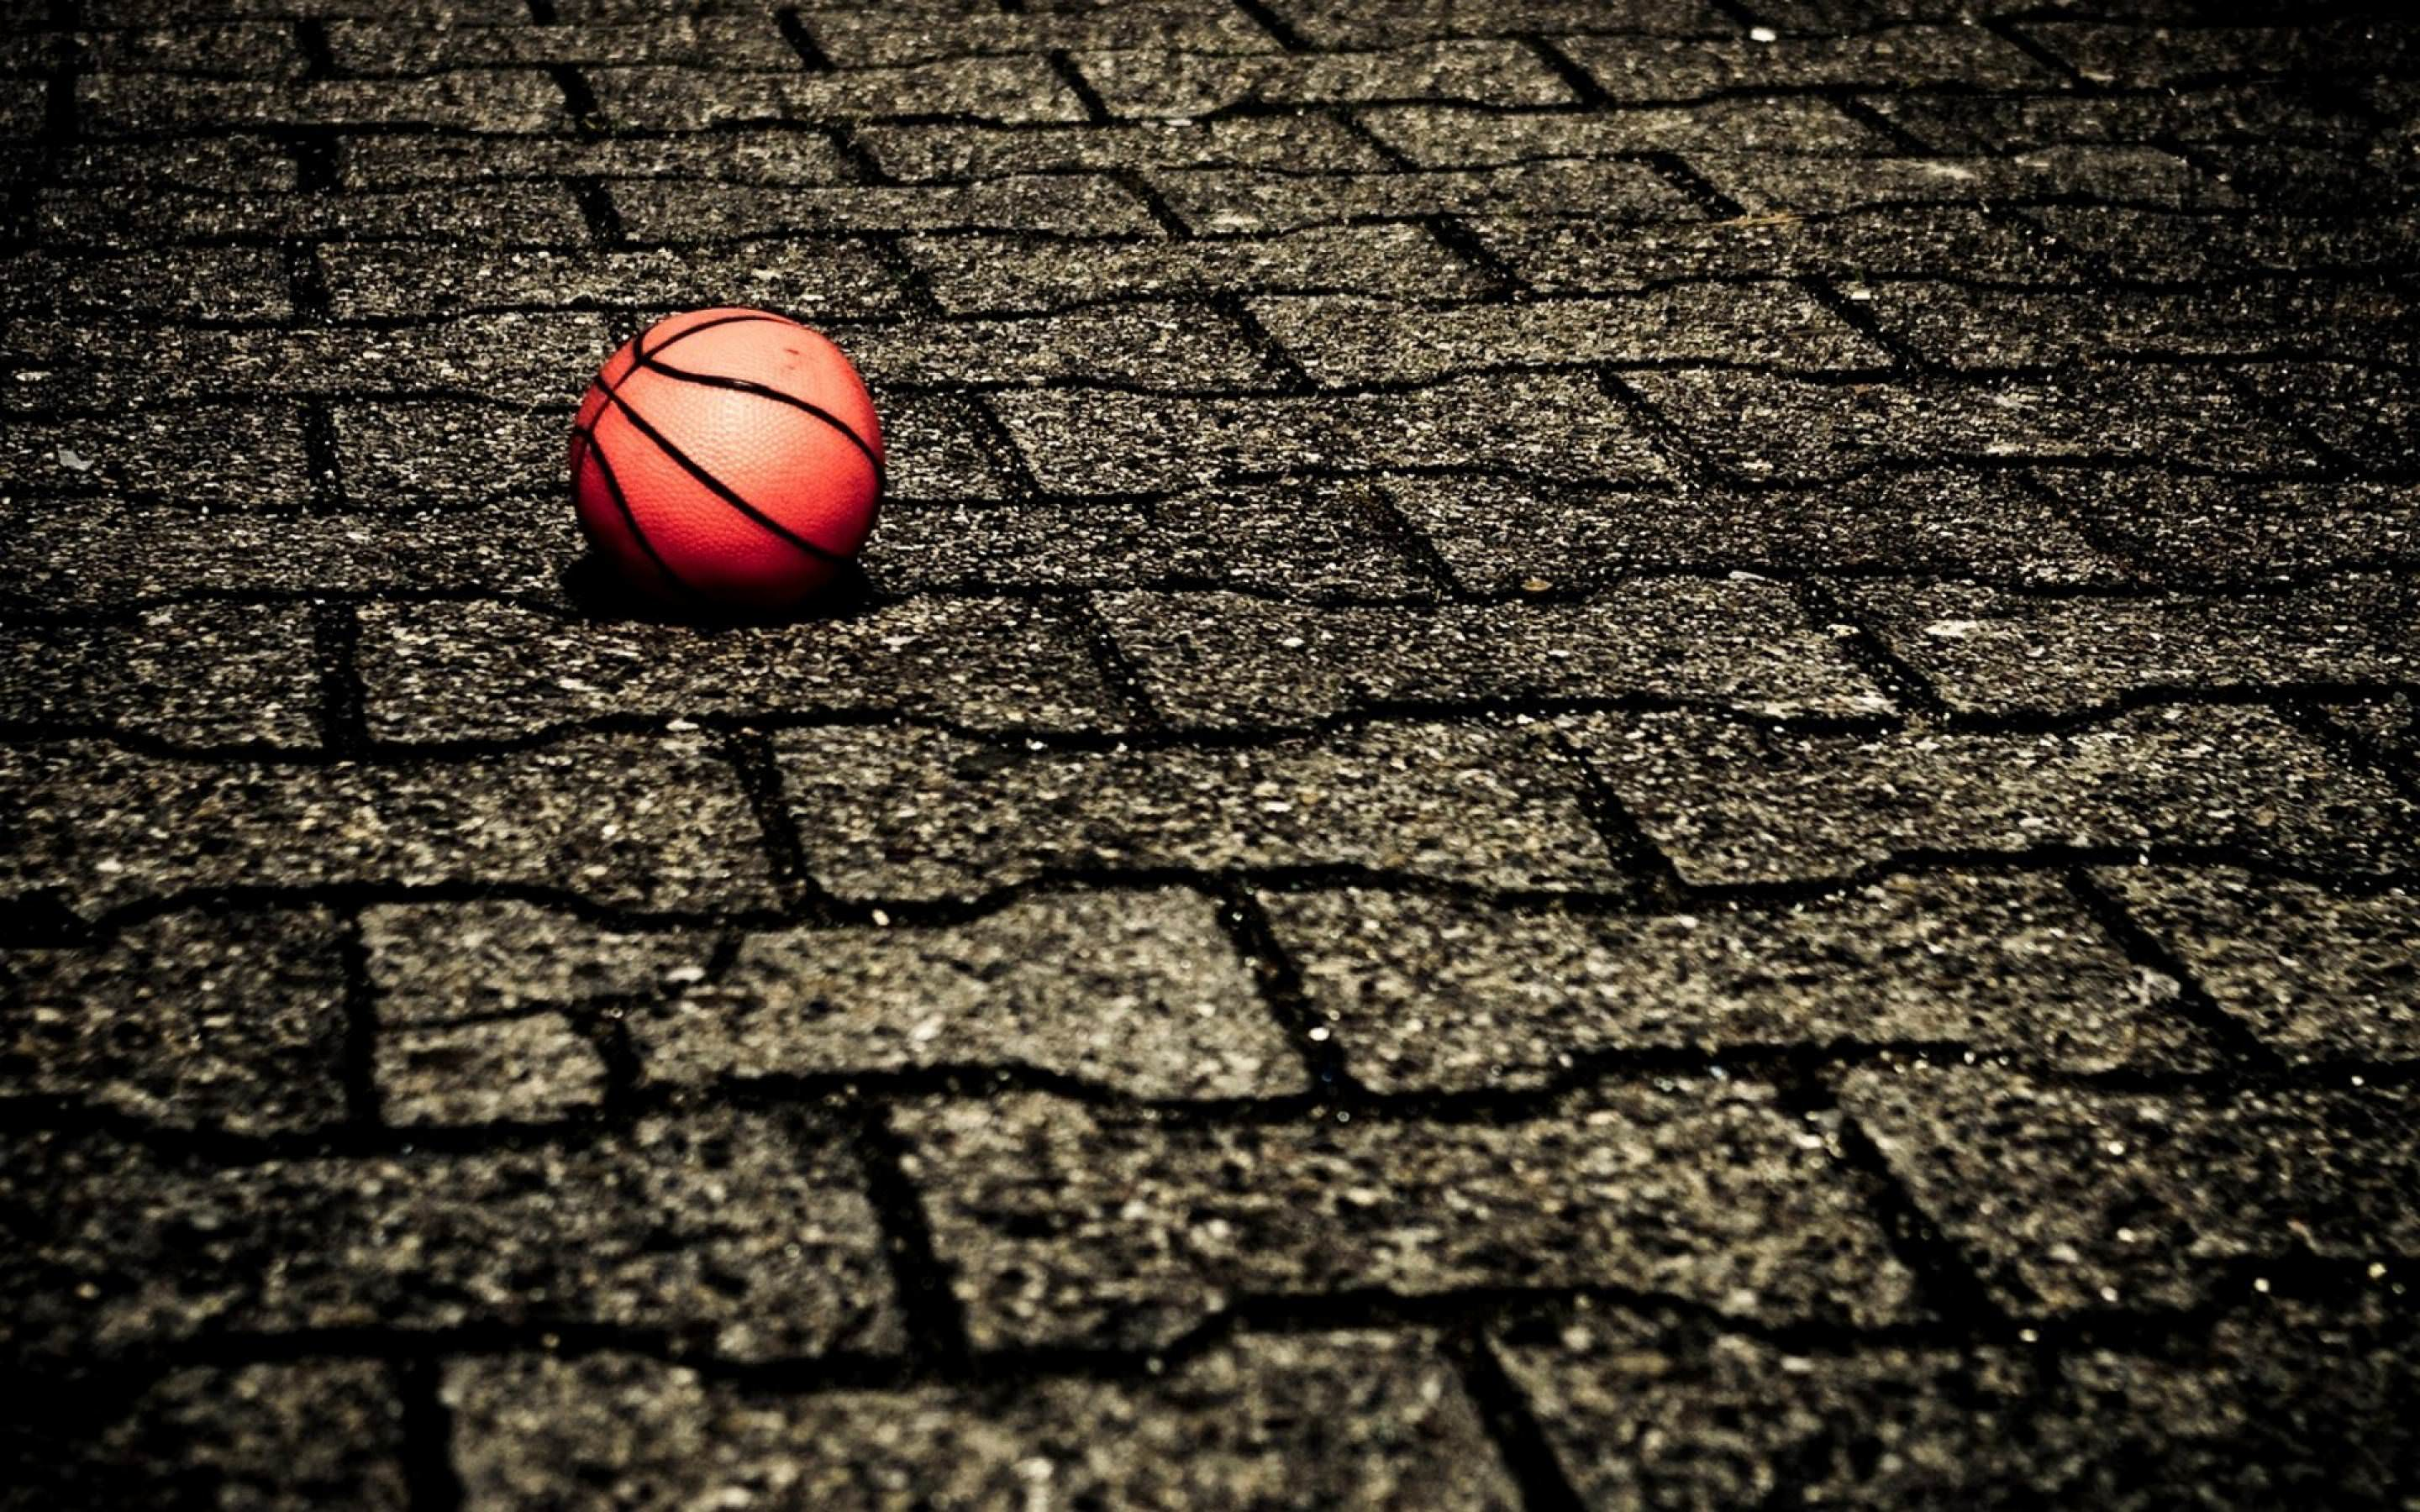 Sport Wallpaper Basketball: 25+ Basketball Wallpapers, Backgrounds, Images,Pictures